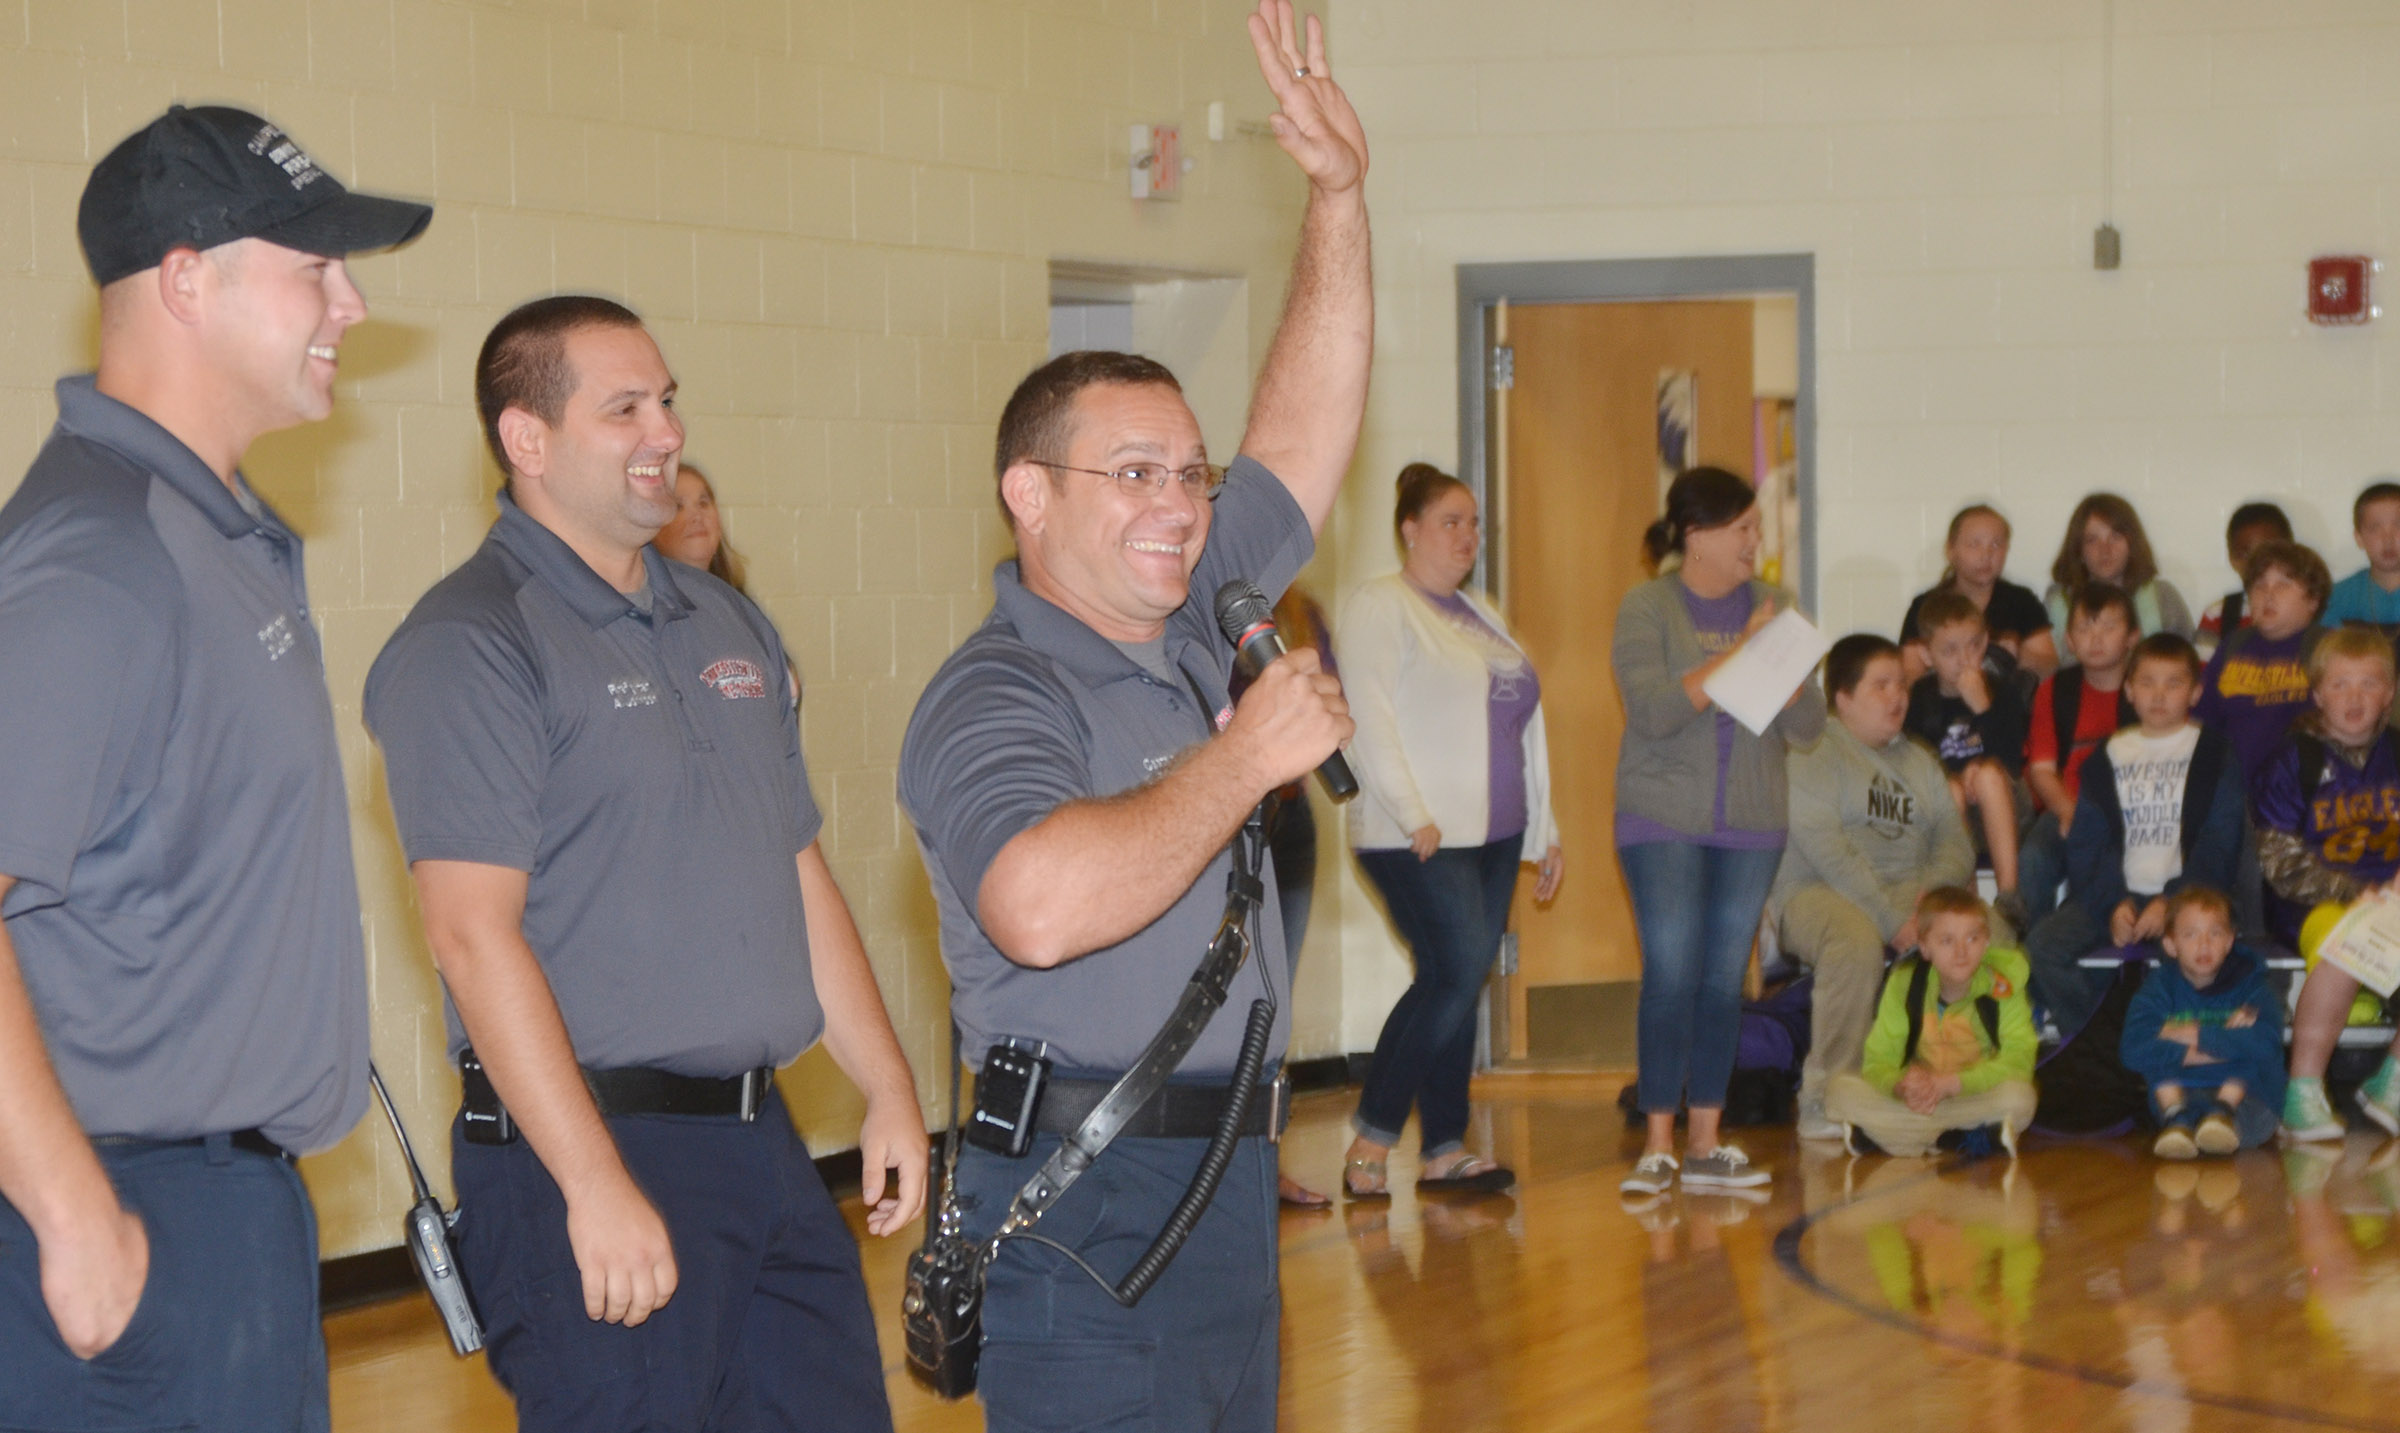 Campbellsville Fire & Rescue Captain Keith Bricken greets CES students. At left are firefighters Daniel Lovett, at left, and Alex Johnson.